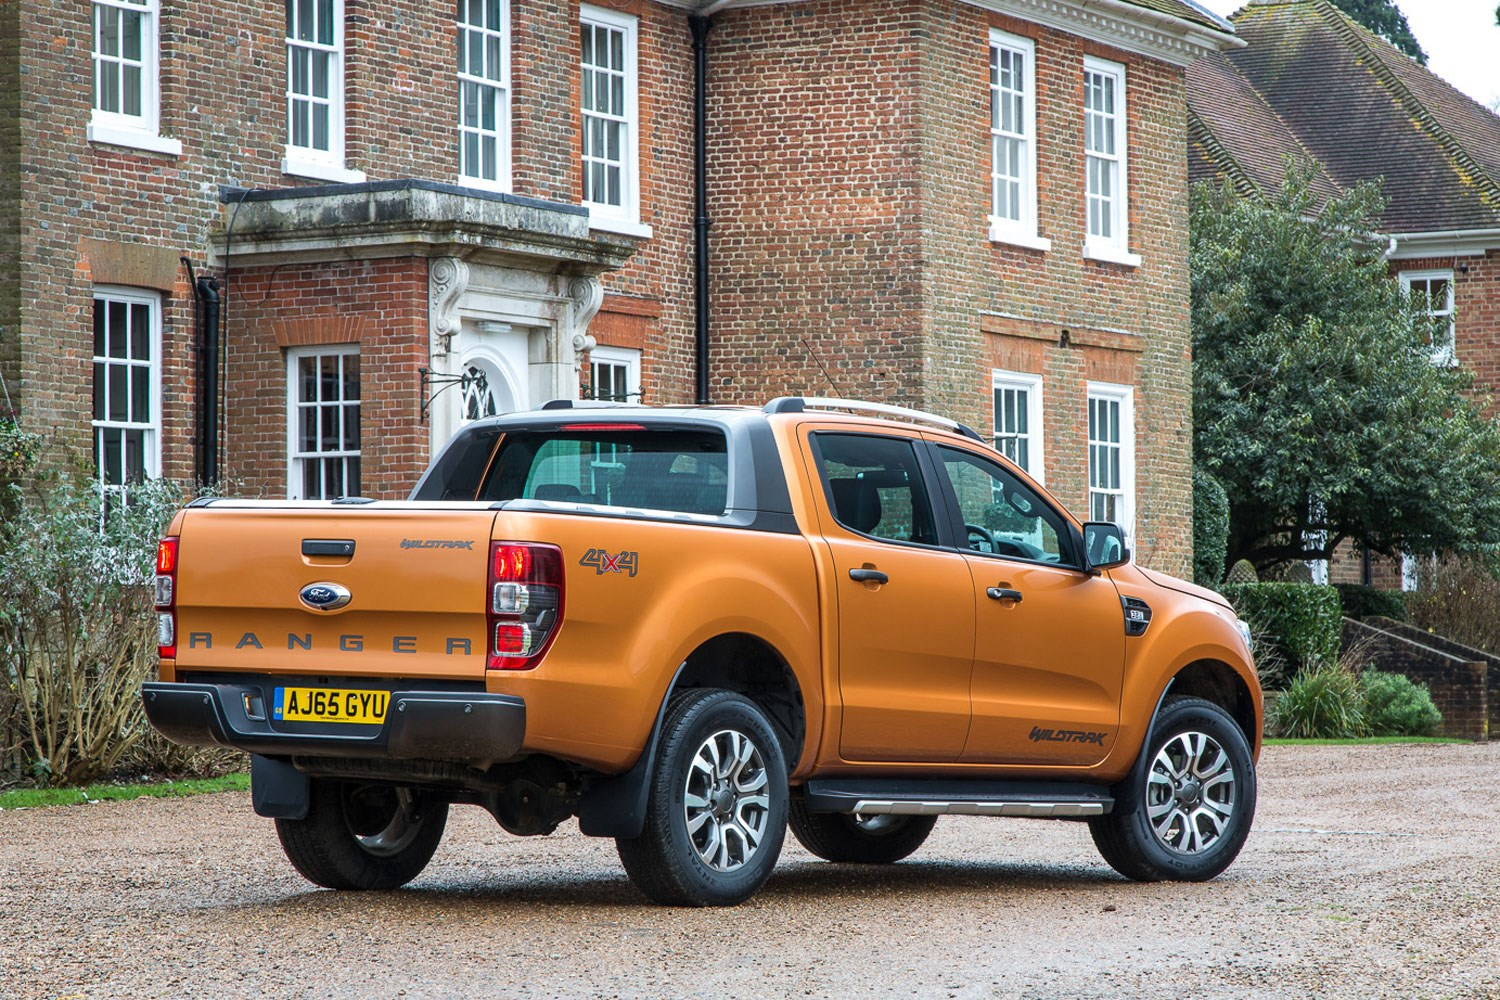 hight resolution of ford ranger review 2016 facelift rear view orange wildtrak